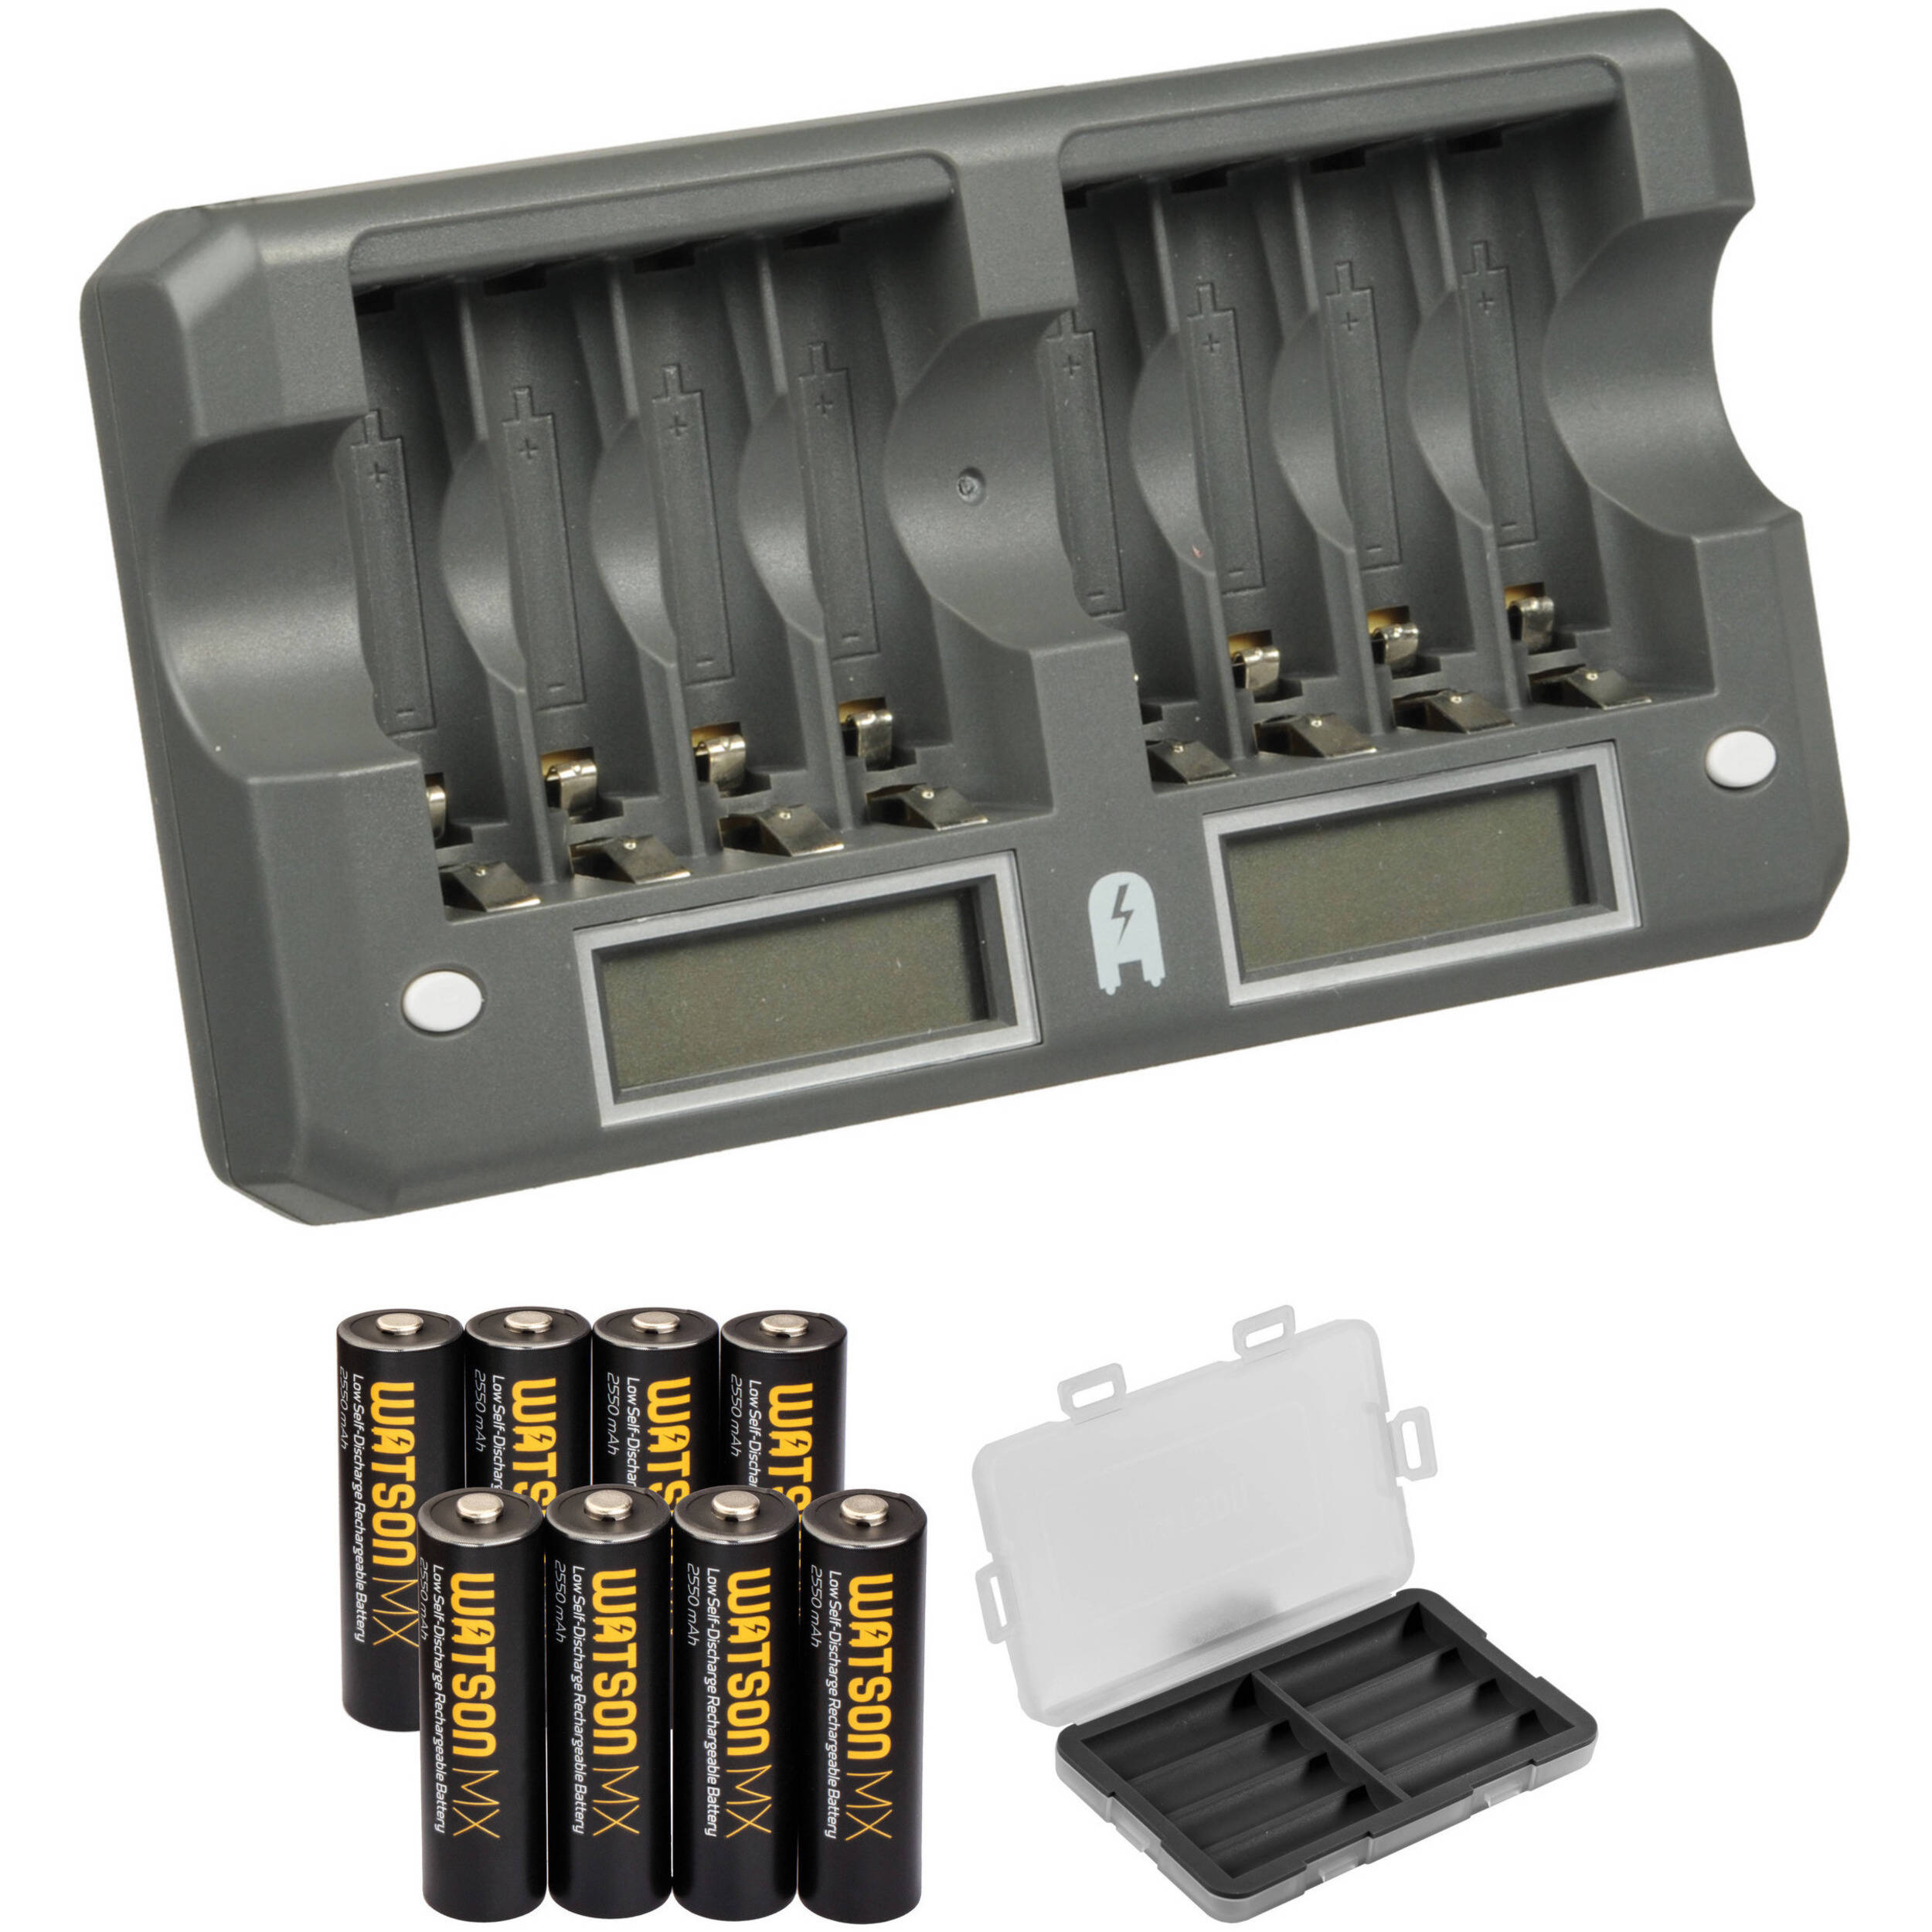 Watson 8 Bay Rapid Charger Kit With Aa Mx Nimh 8lcd Aak Bh Simplechargercircuitchargesupto12nicdcellsjpg Rechargeable Batteries 2550mah